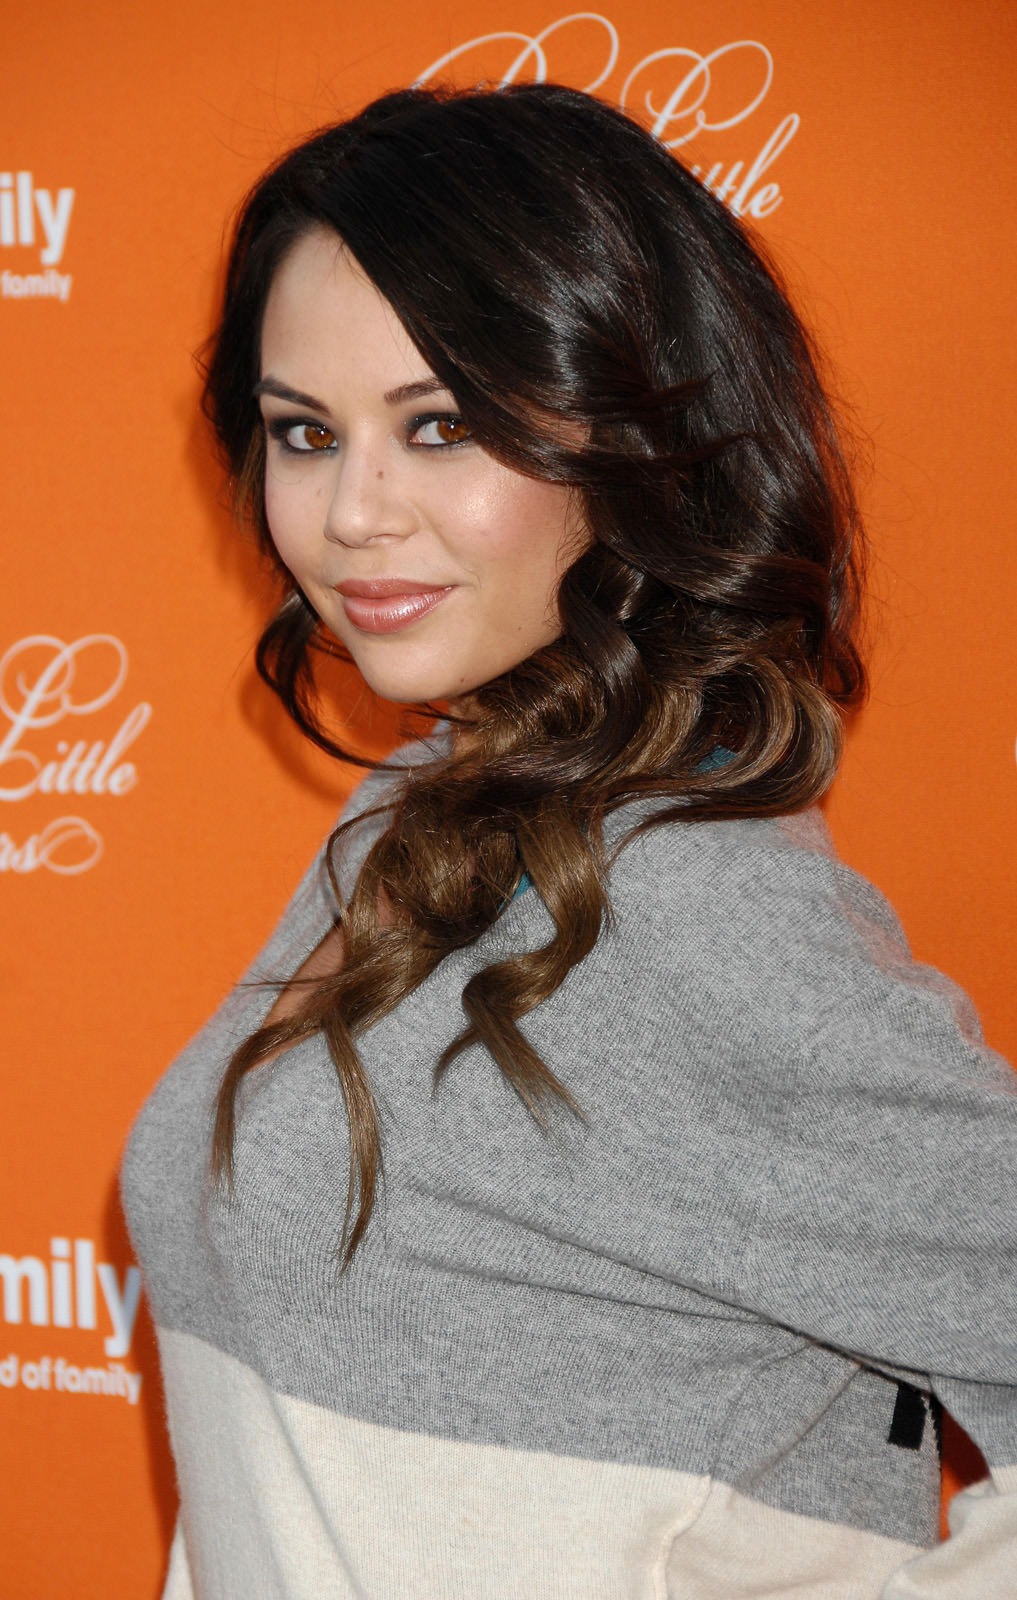 Janel Parrish Photo Gallery